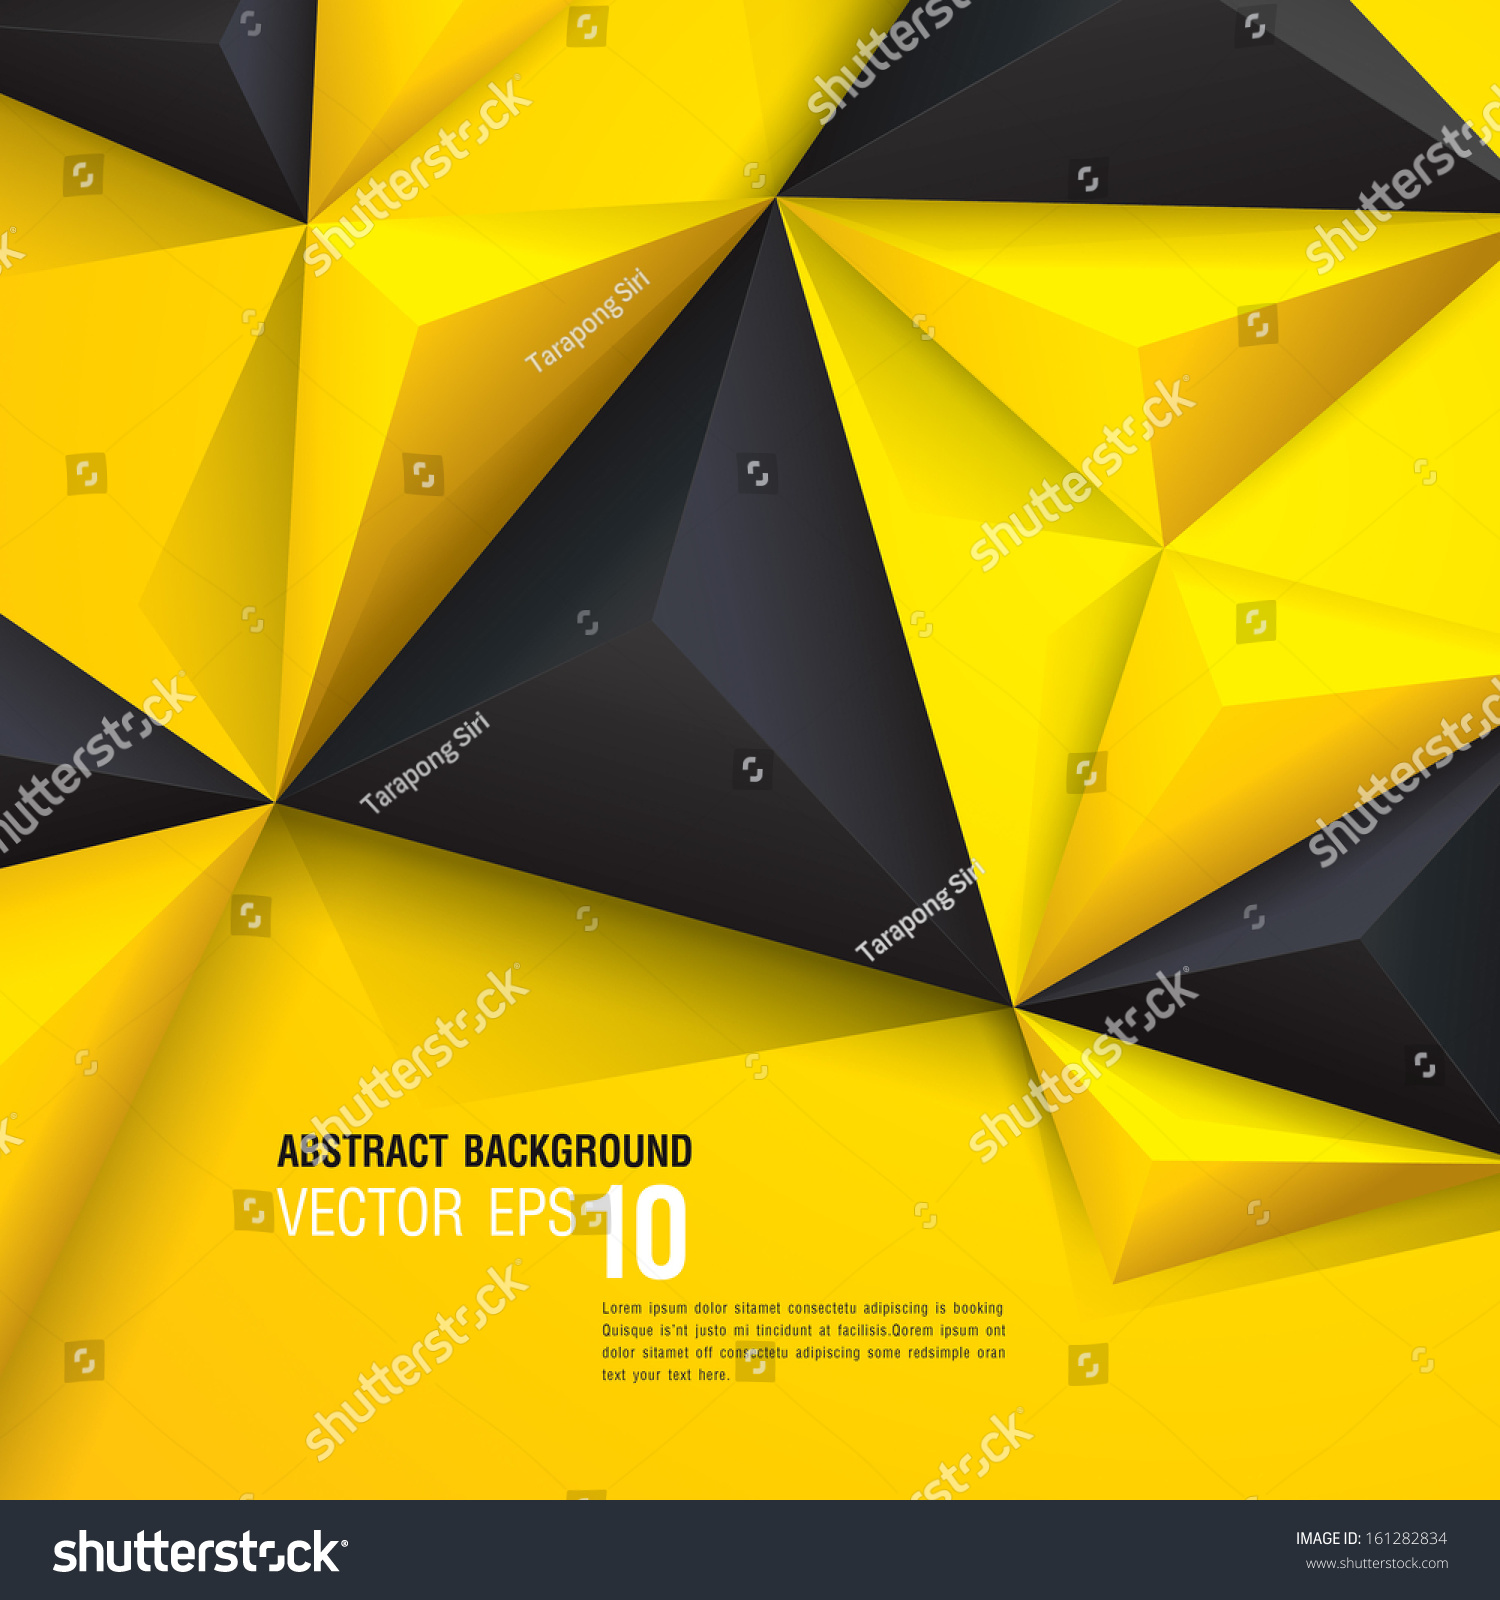 Black Book Cover Design ~ Yellow and black vector geometric background can be used